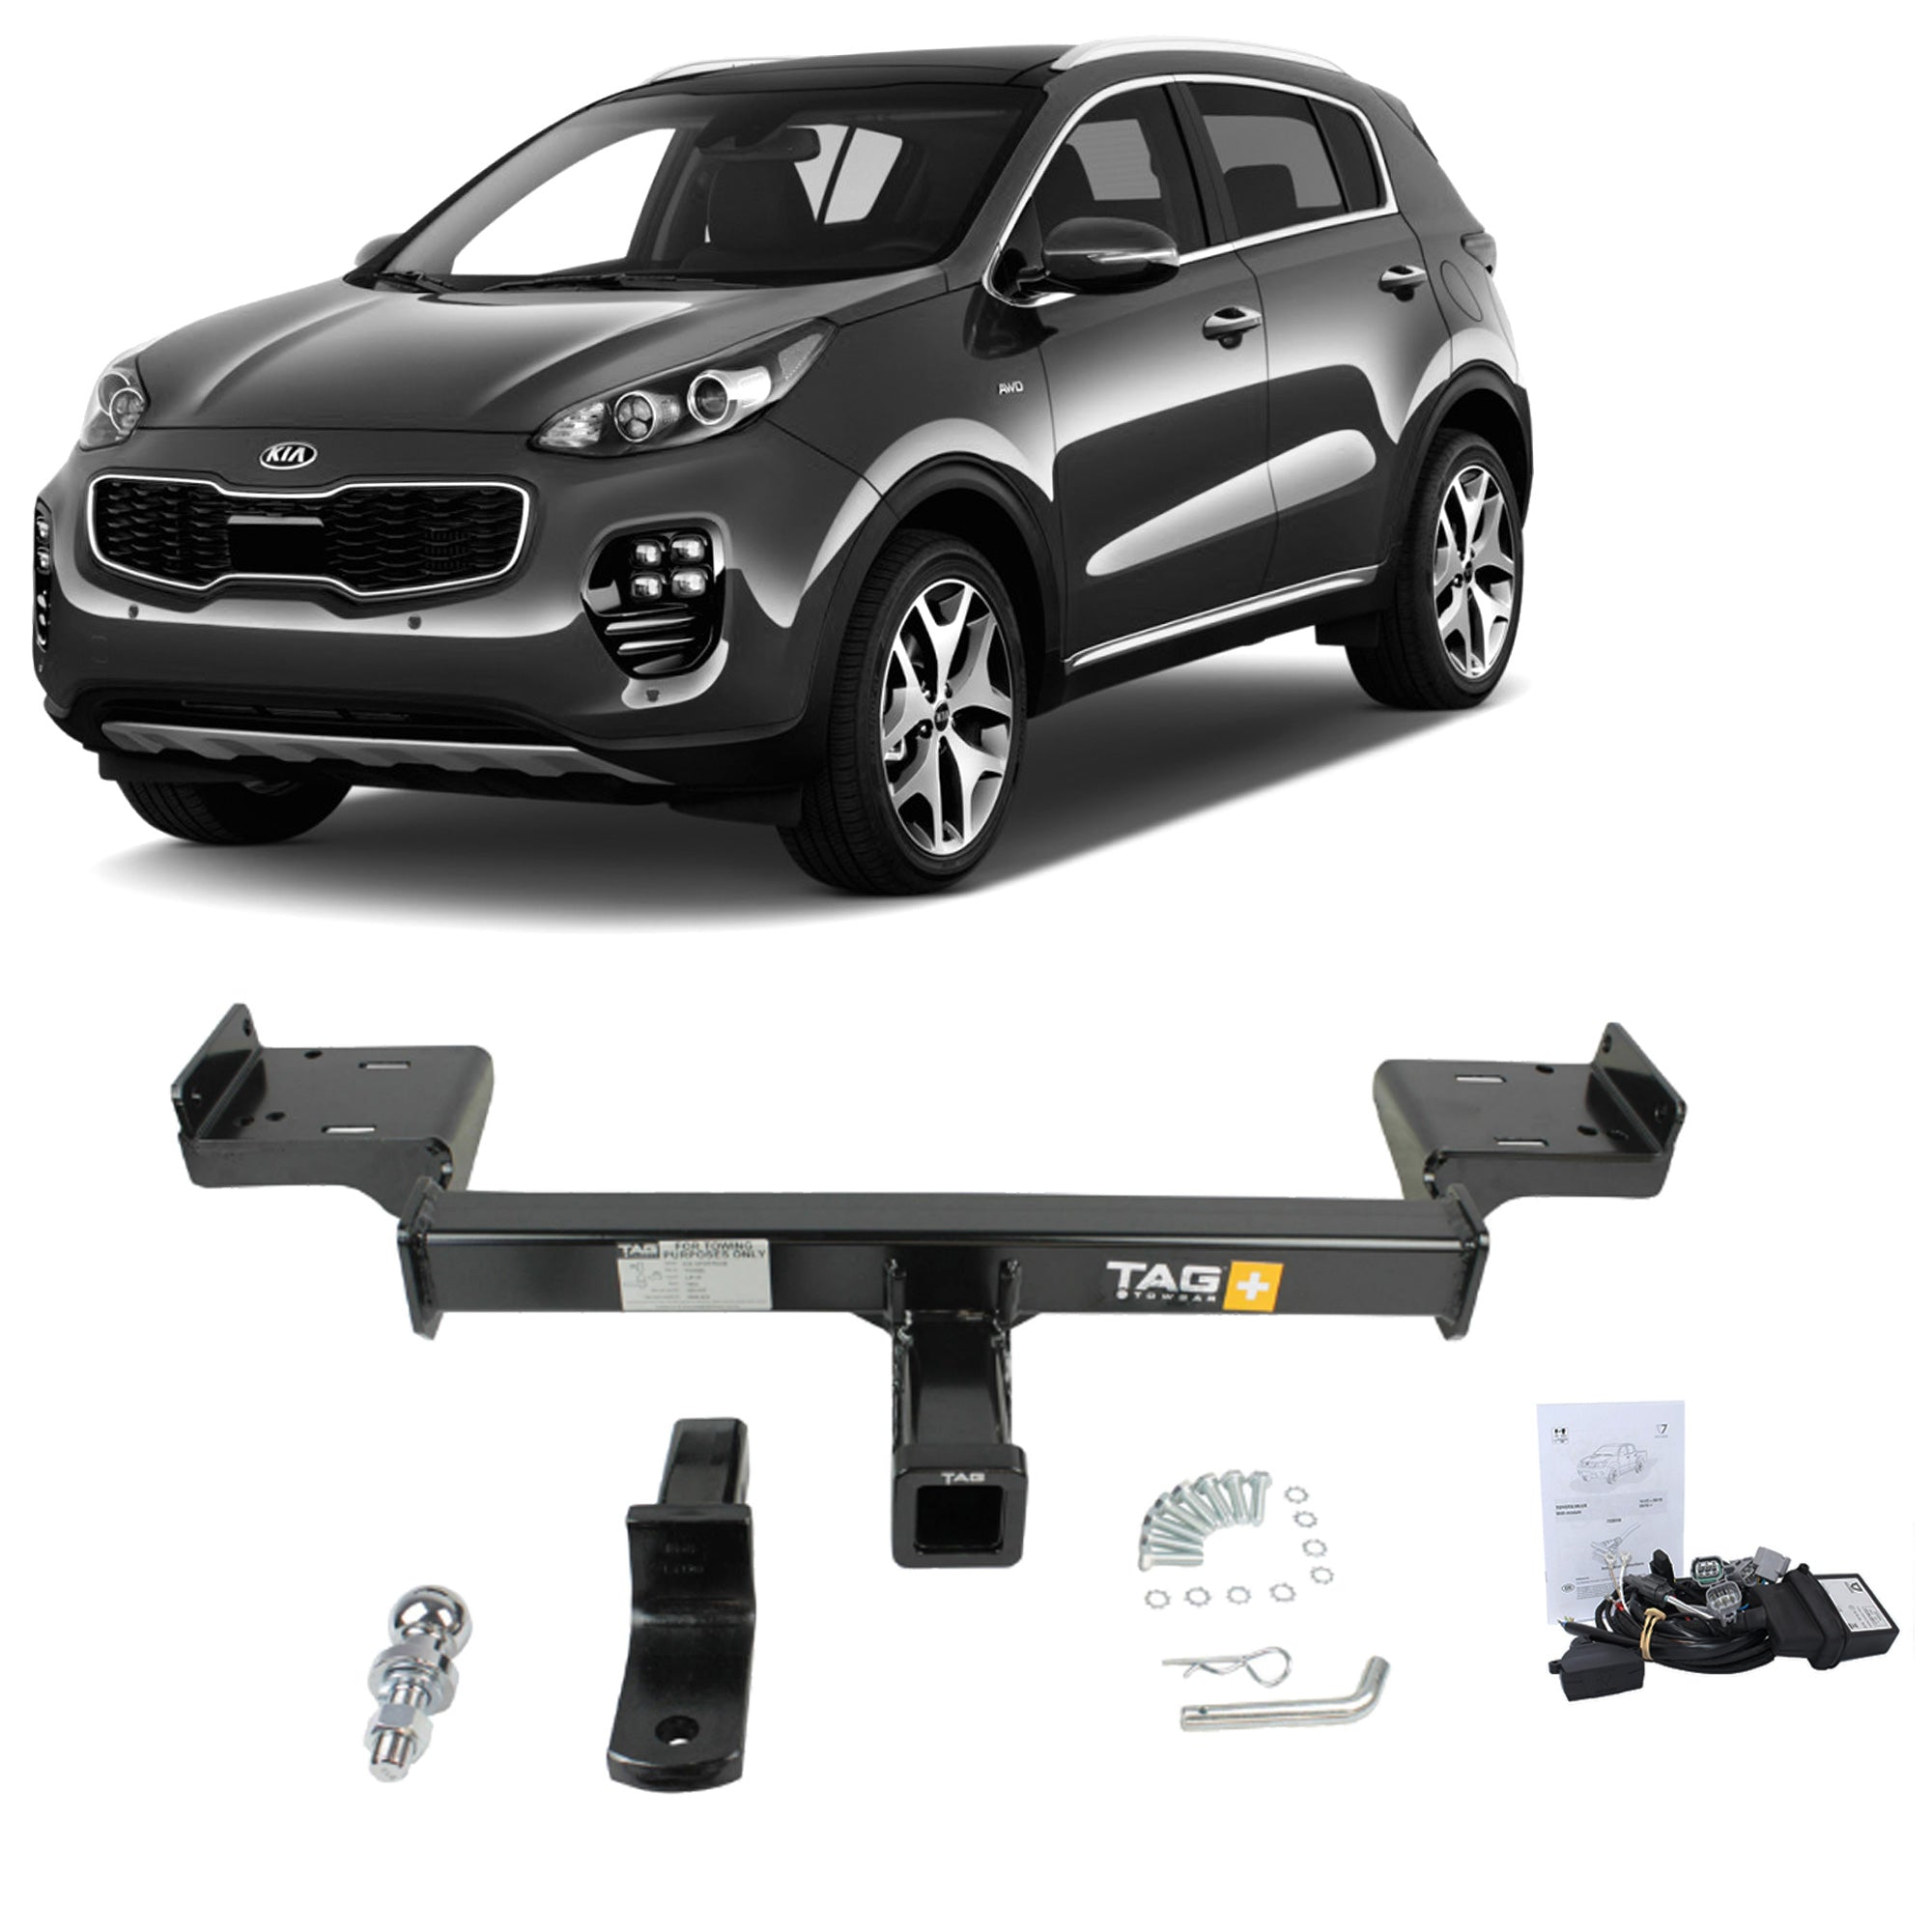 TAG Heavy Duty Towbar to suit KIA Sportage (01/2019 - on) - No Wiring Harness